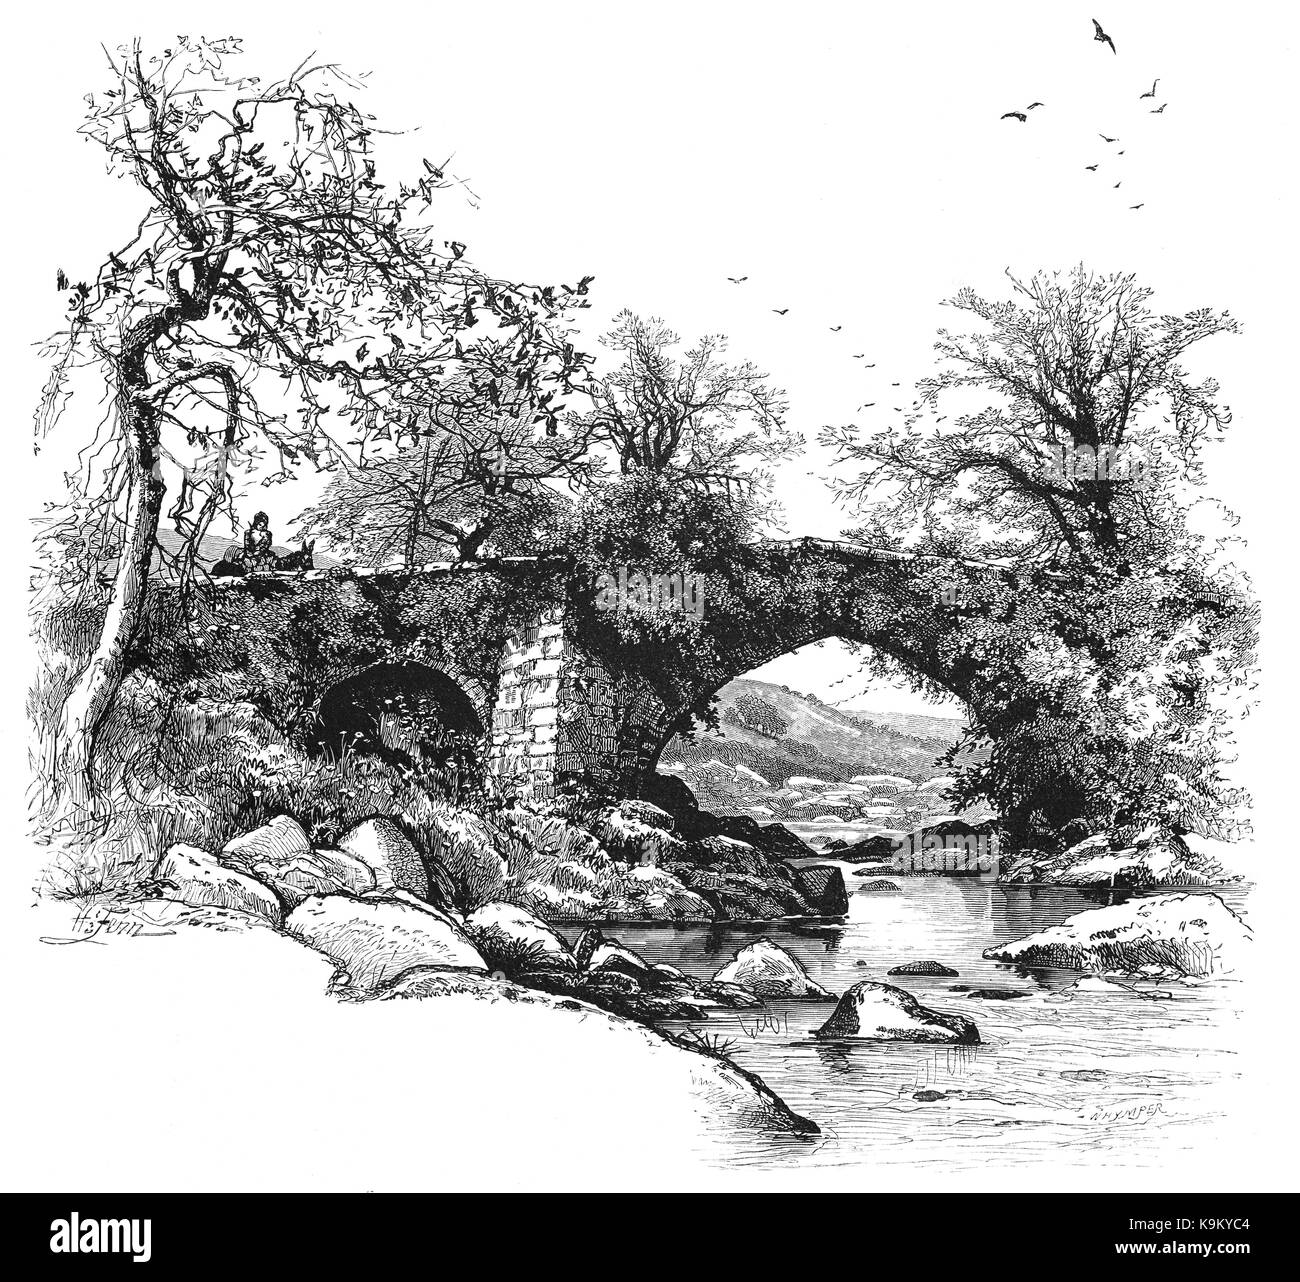 1870: A horserider crossing Harford Bridge crossing the River Erme, Dartmoor, Devon, England - Stock Image